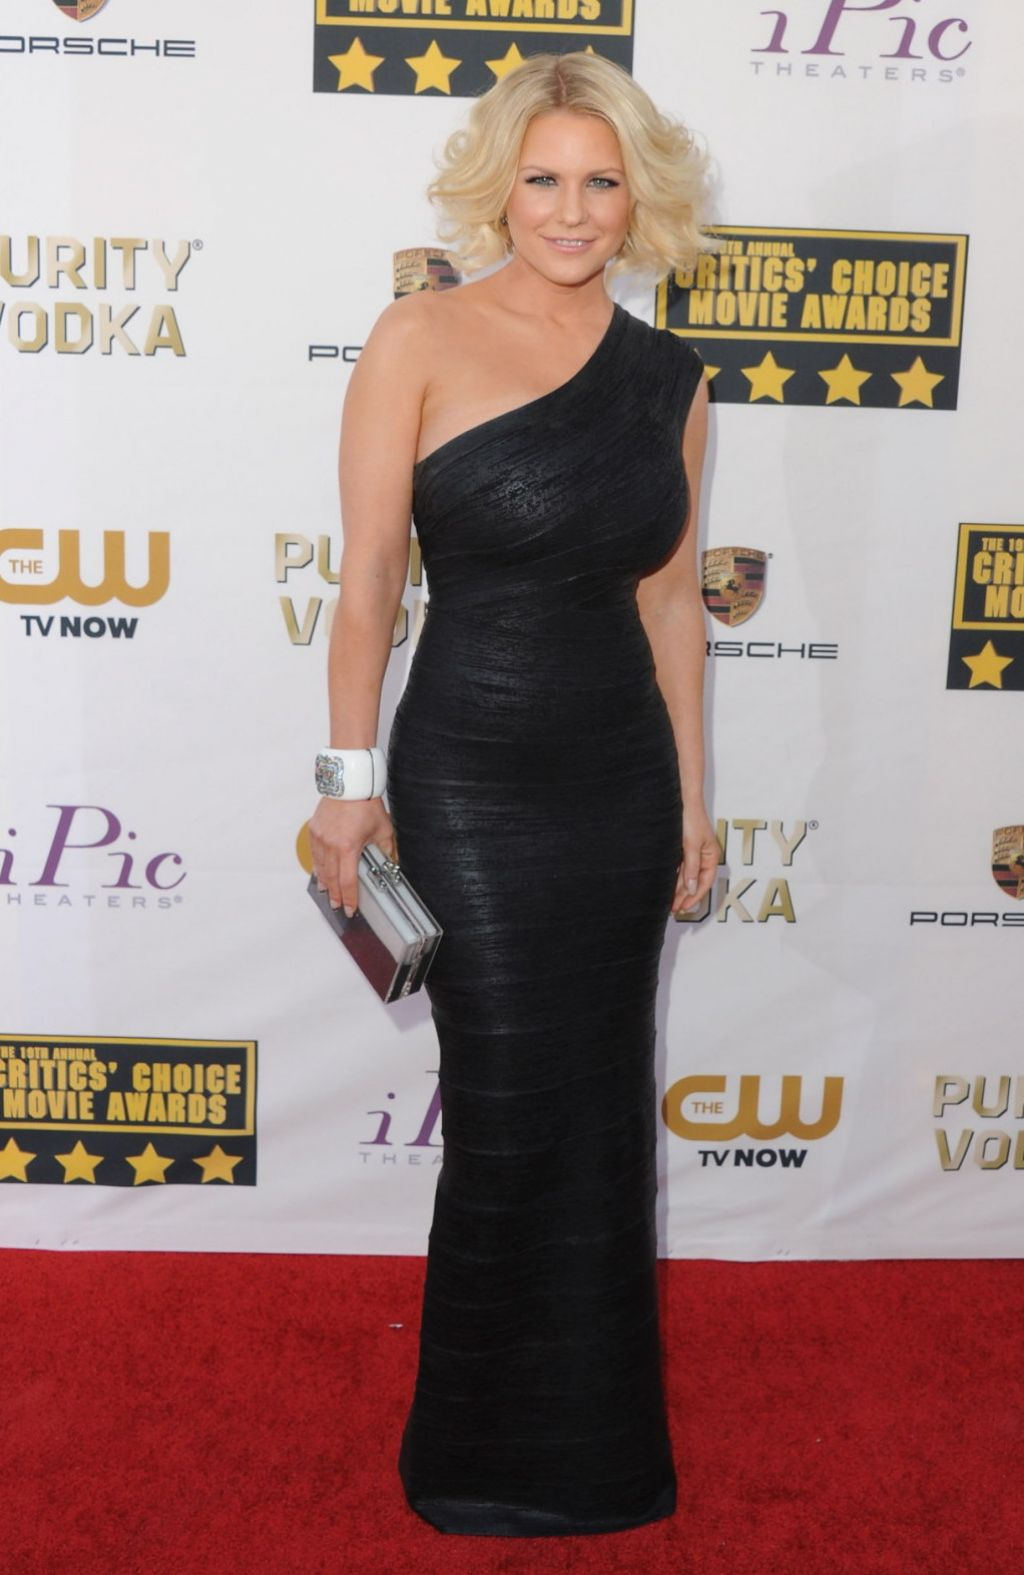 Carrie Keagan - 19th Annual Critics Choice Movie Awards in Santa Monica, January 2014